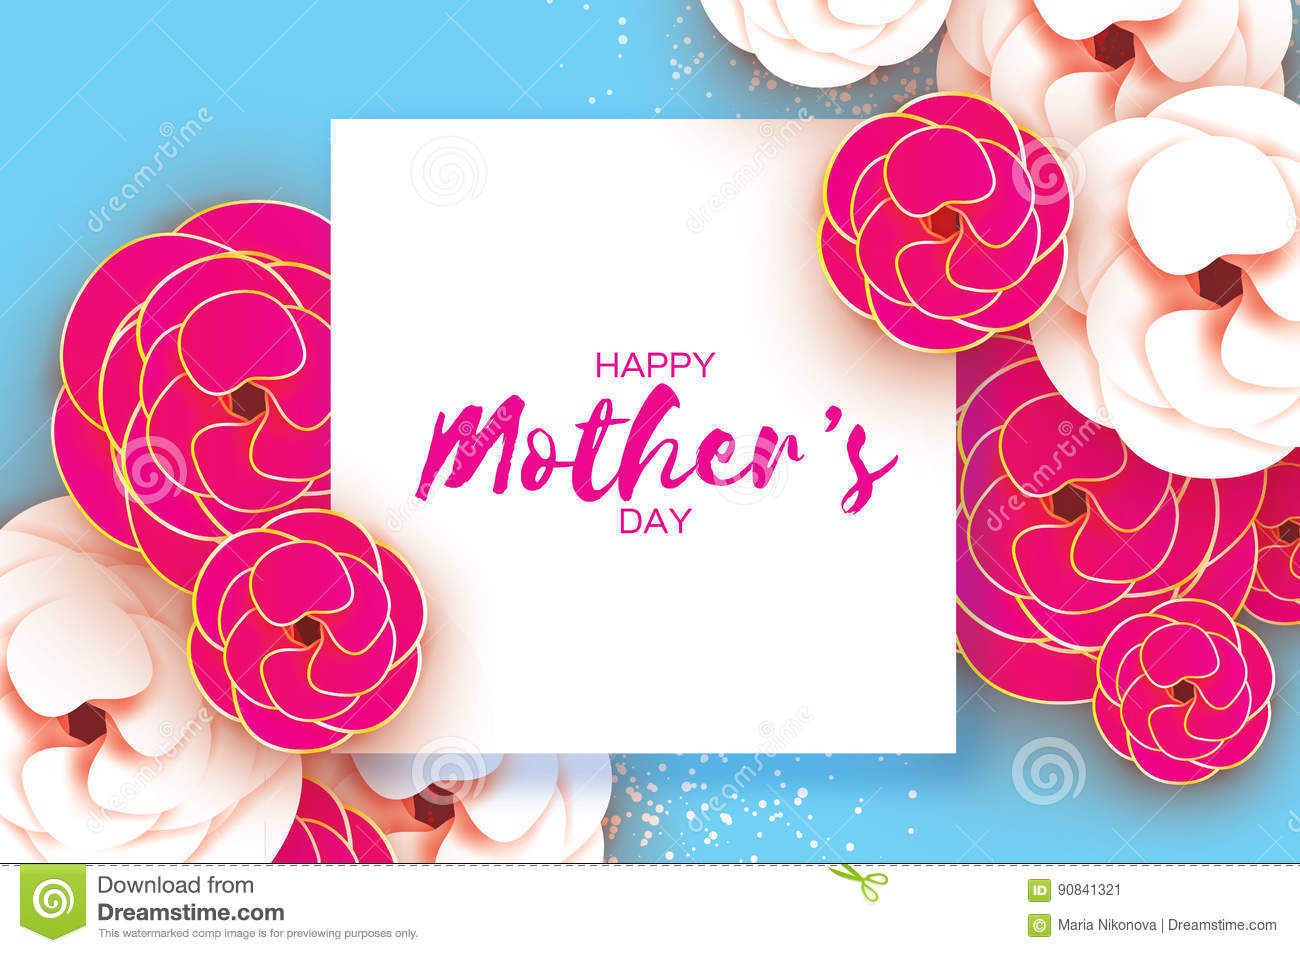 Mothers Day Greeting Card Womens Day Paper Cut Pink Gold Flower